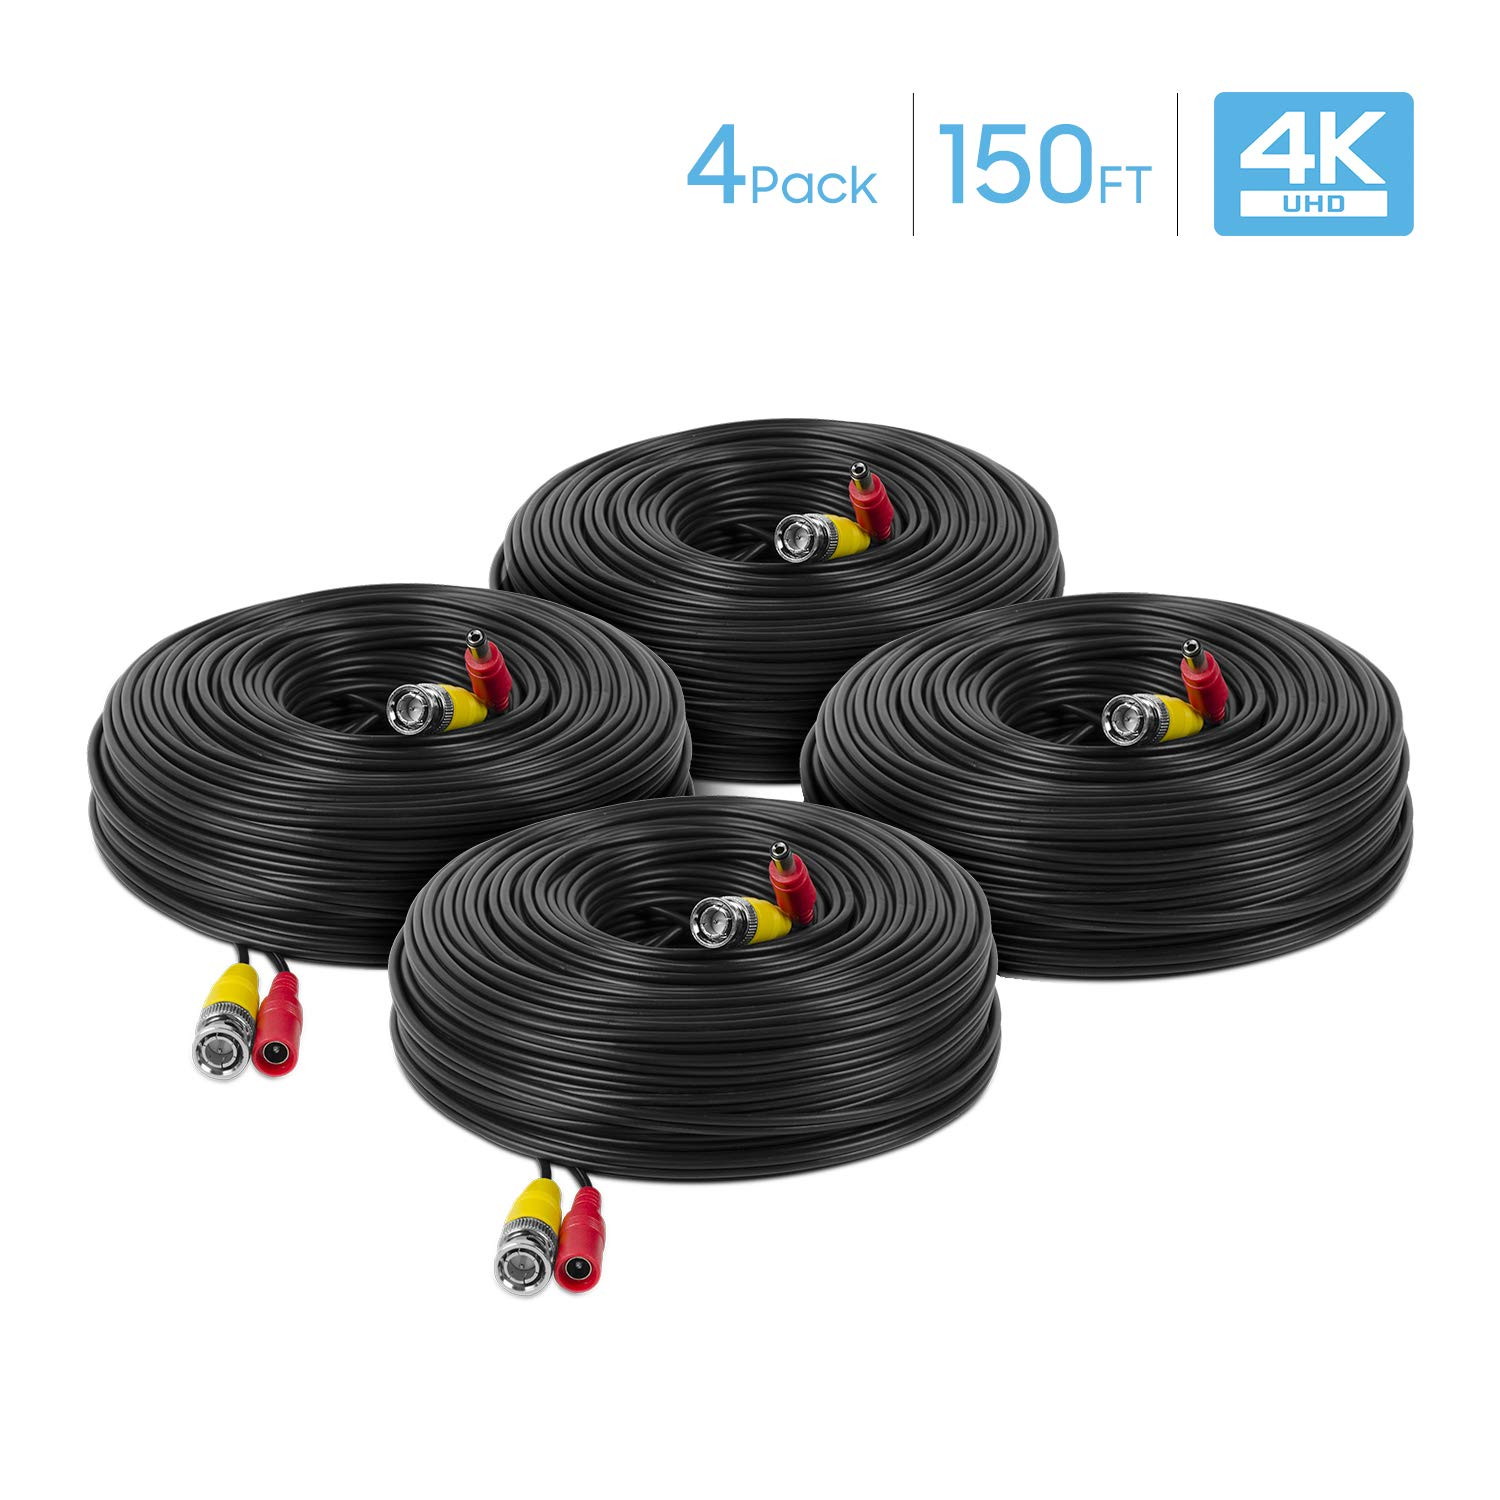 Amcrest 4-Pack 4K Security Camera Cable 150FT BNC Cable, Camera Wire CCTV, Pre-Made All-in-One Video and Power Cable for Security Camera, HDCVI, HDTVI Camera, Analog, DVR (4PACK-SCABLE4K150B-PP) by Amcrest